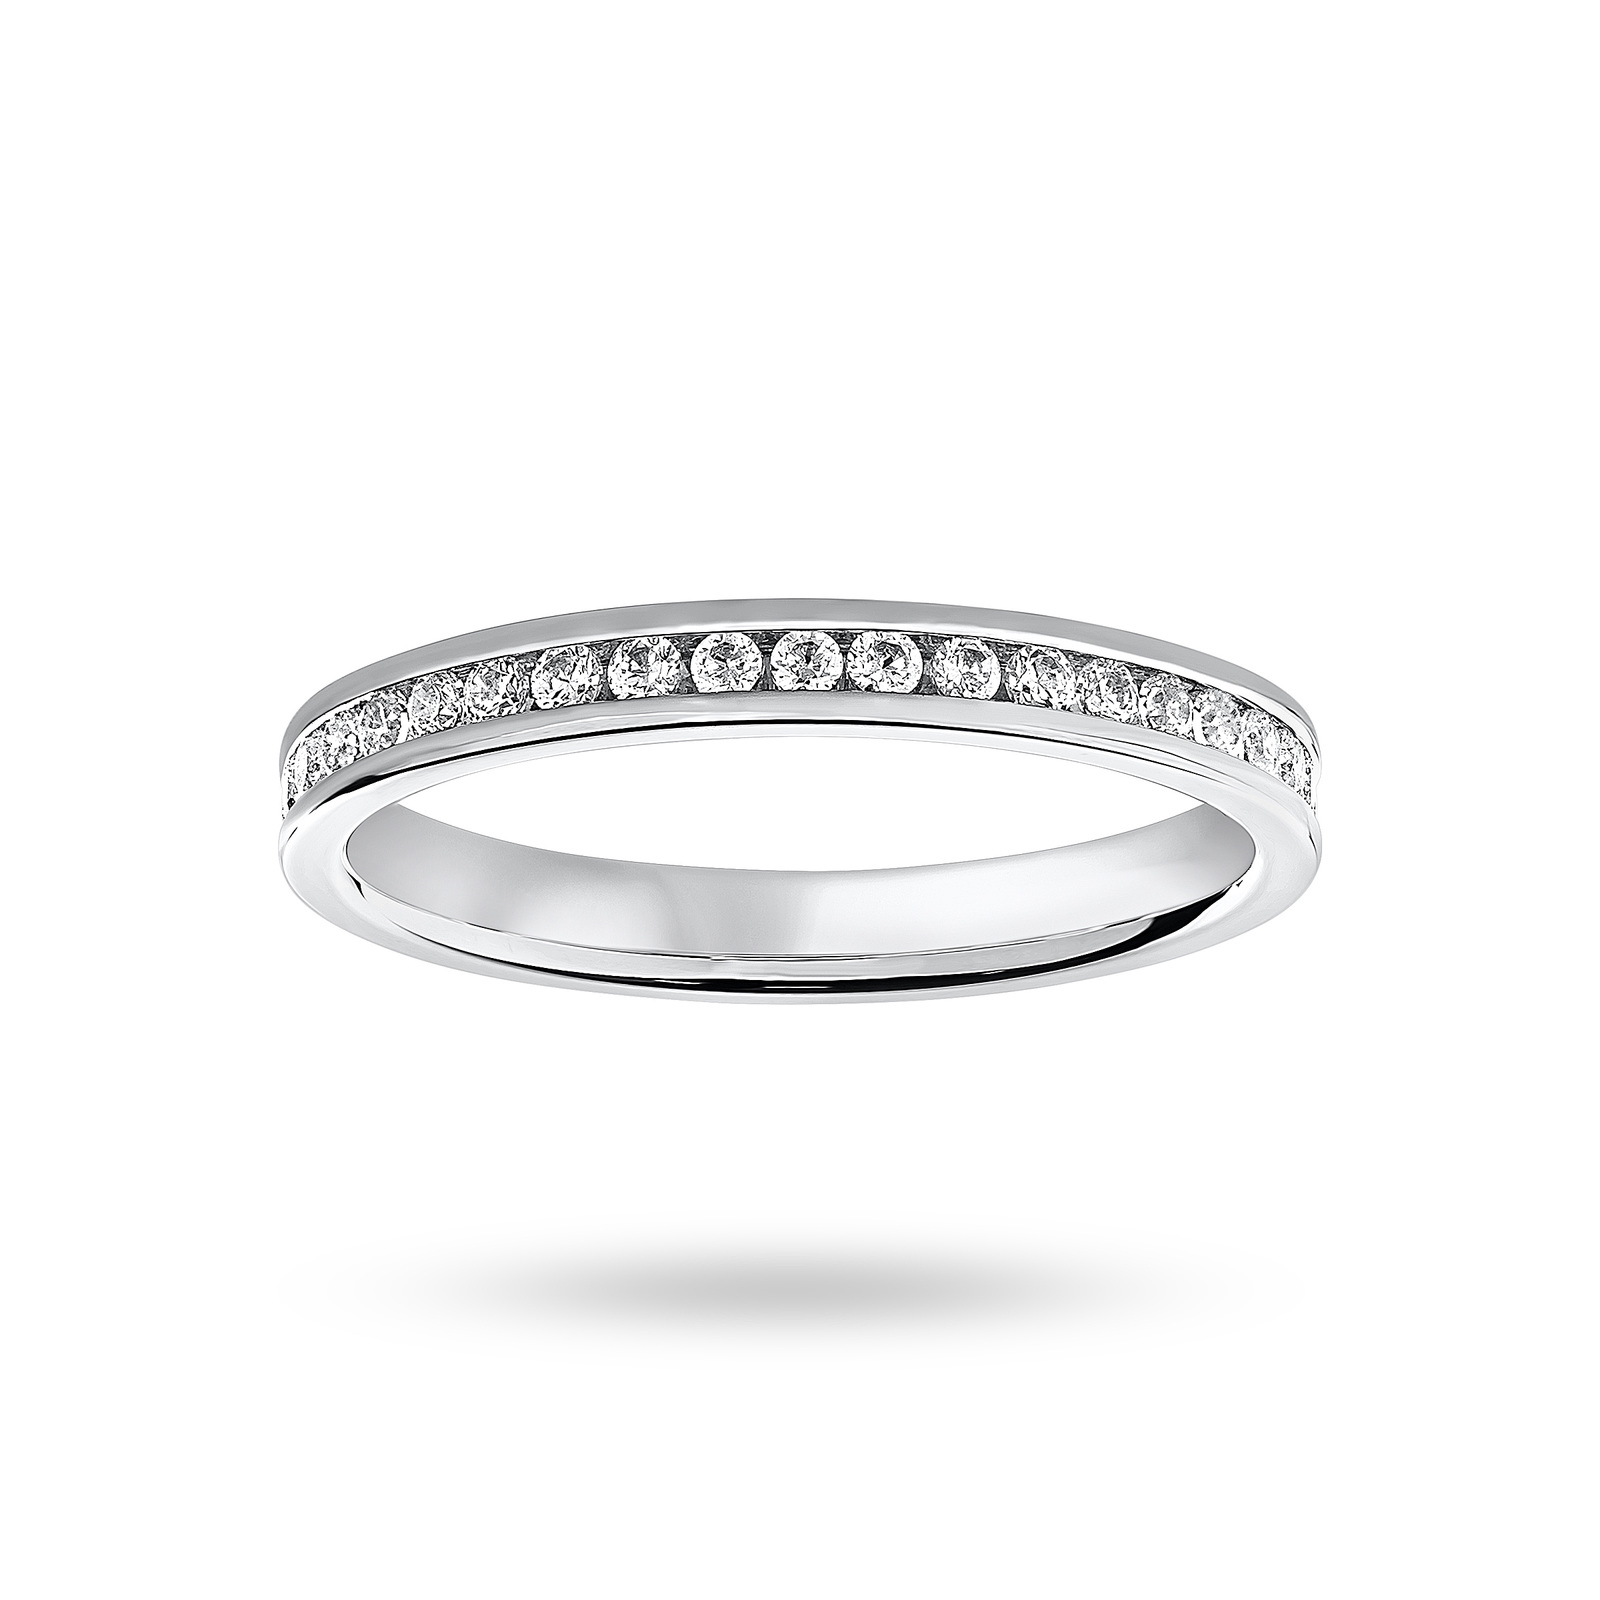 Platinum 0.50 Carat Brilliant Cut Channel Set Full Eternity Ring